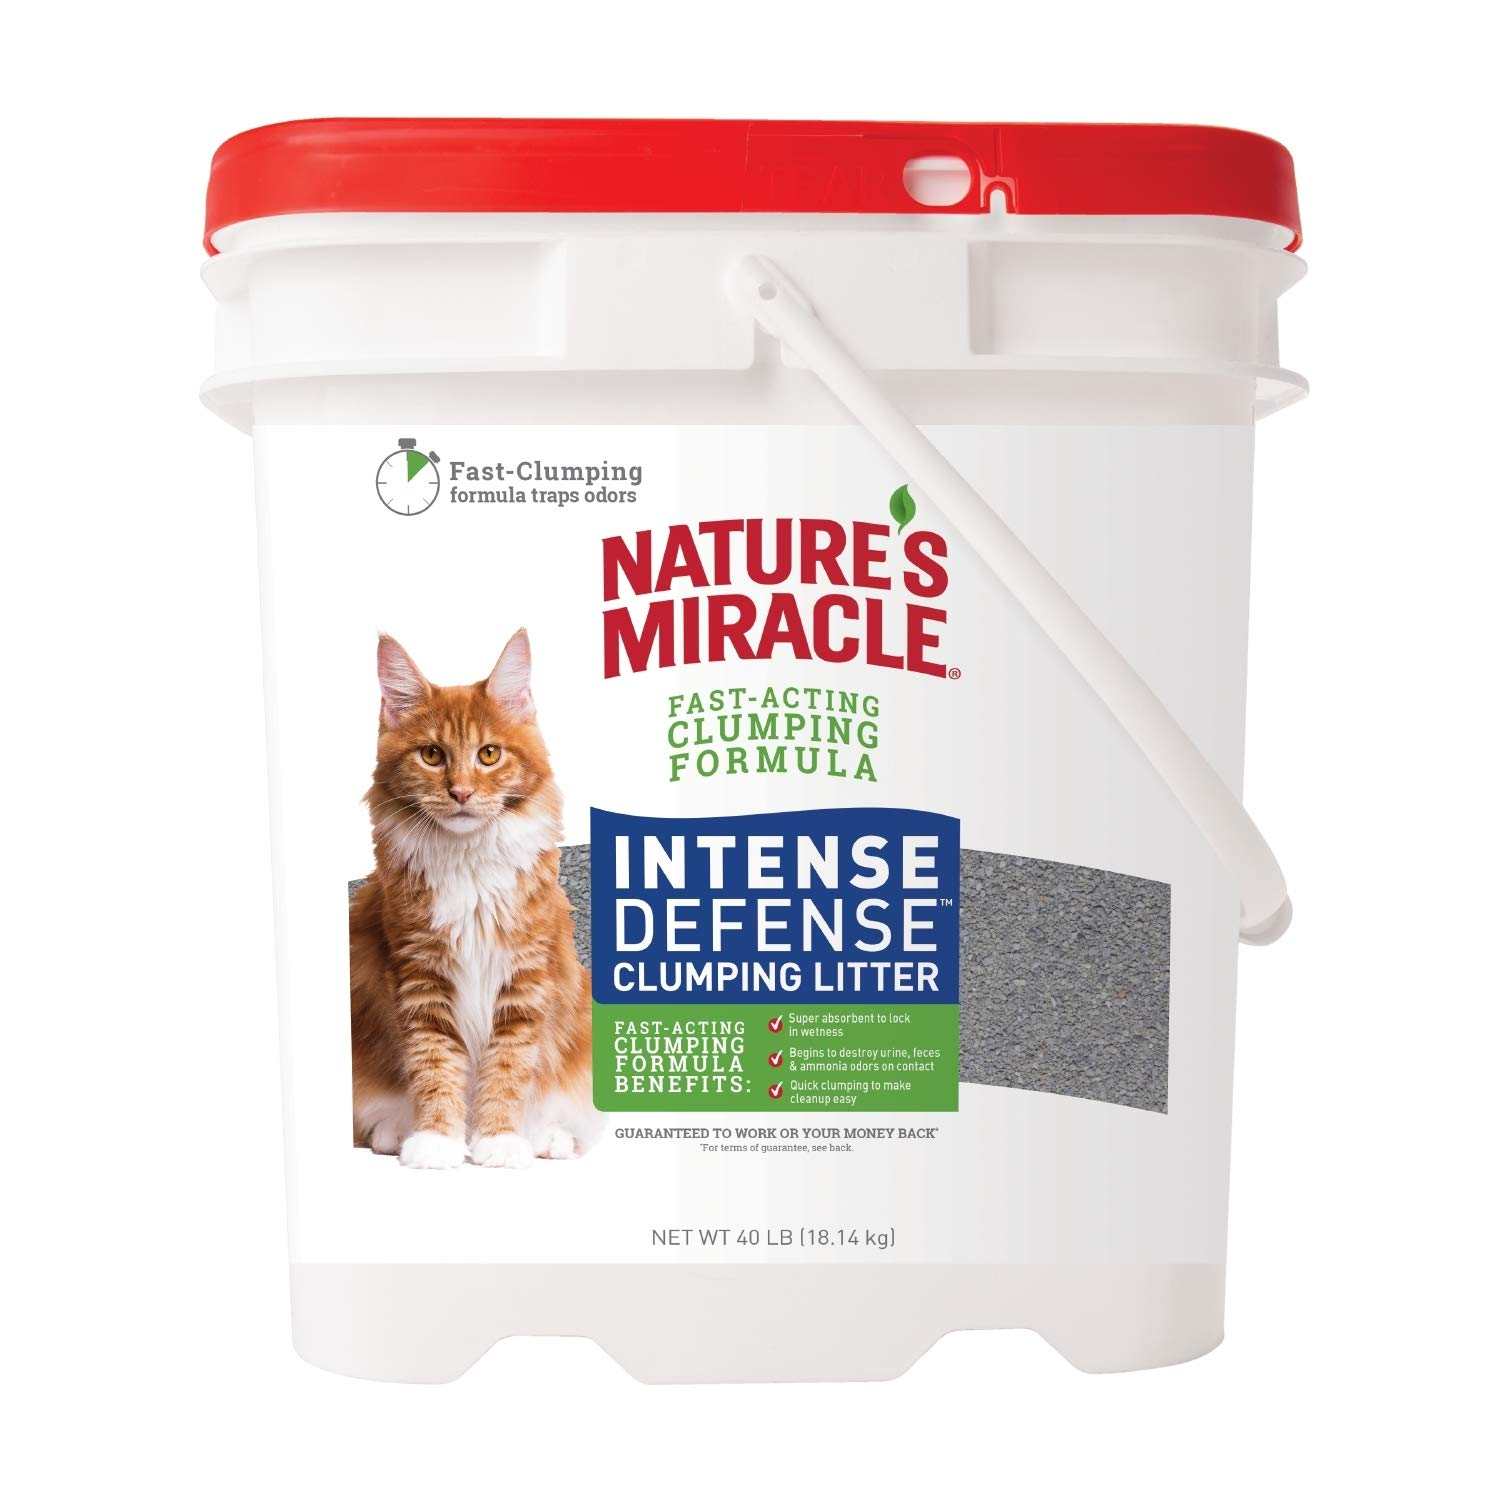 Nature's Miracle P-98134 Intense Defense Clumping Litter, 40 Pounds, Pail, Super Absorbent Fast-Clumping Formula, Dust Free by Nature's Miracle